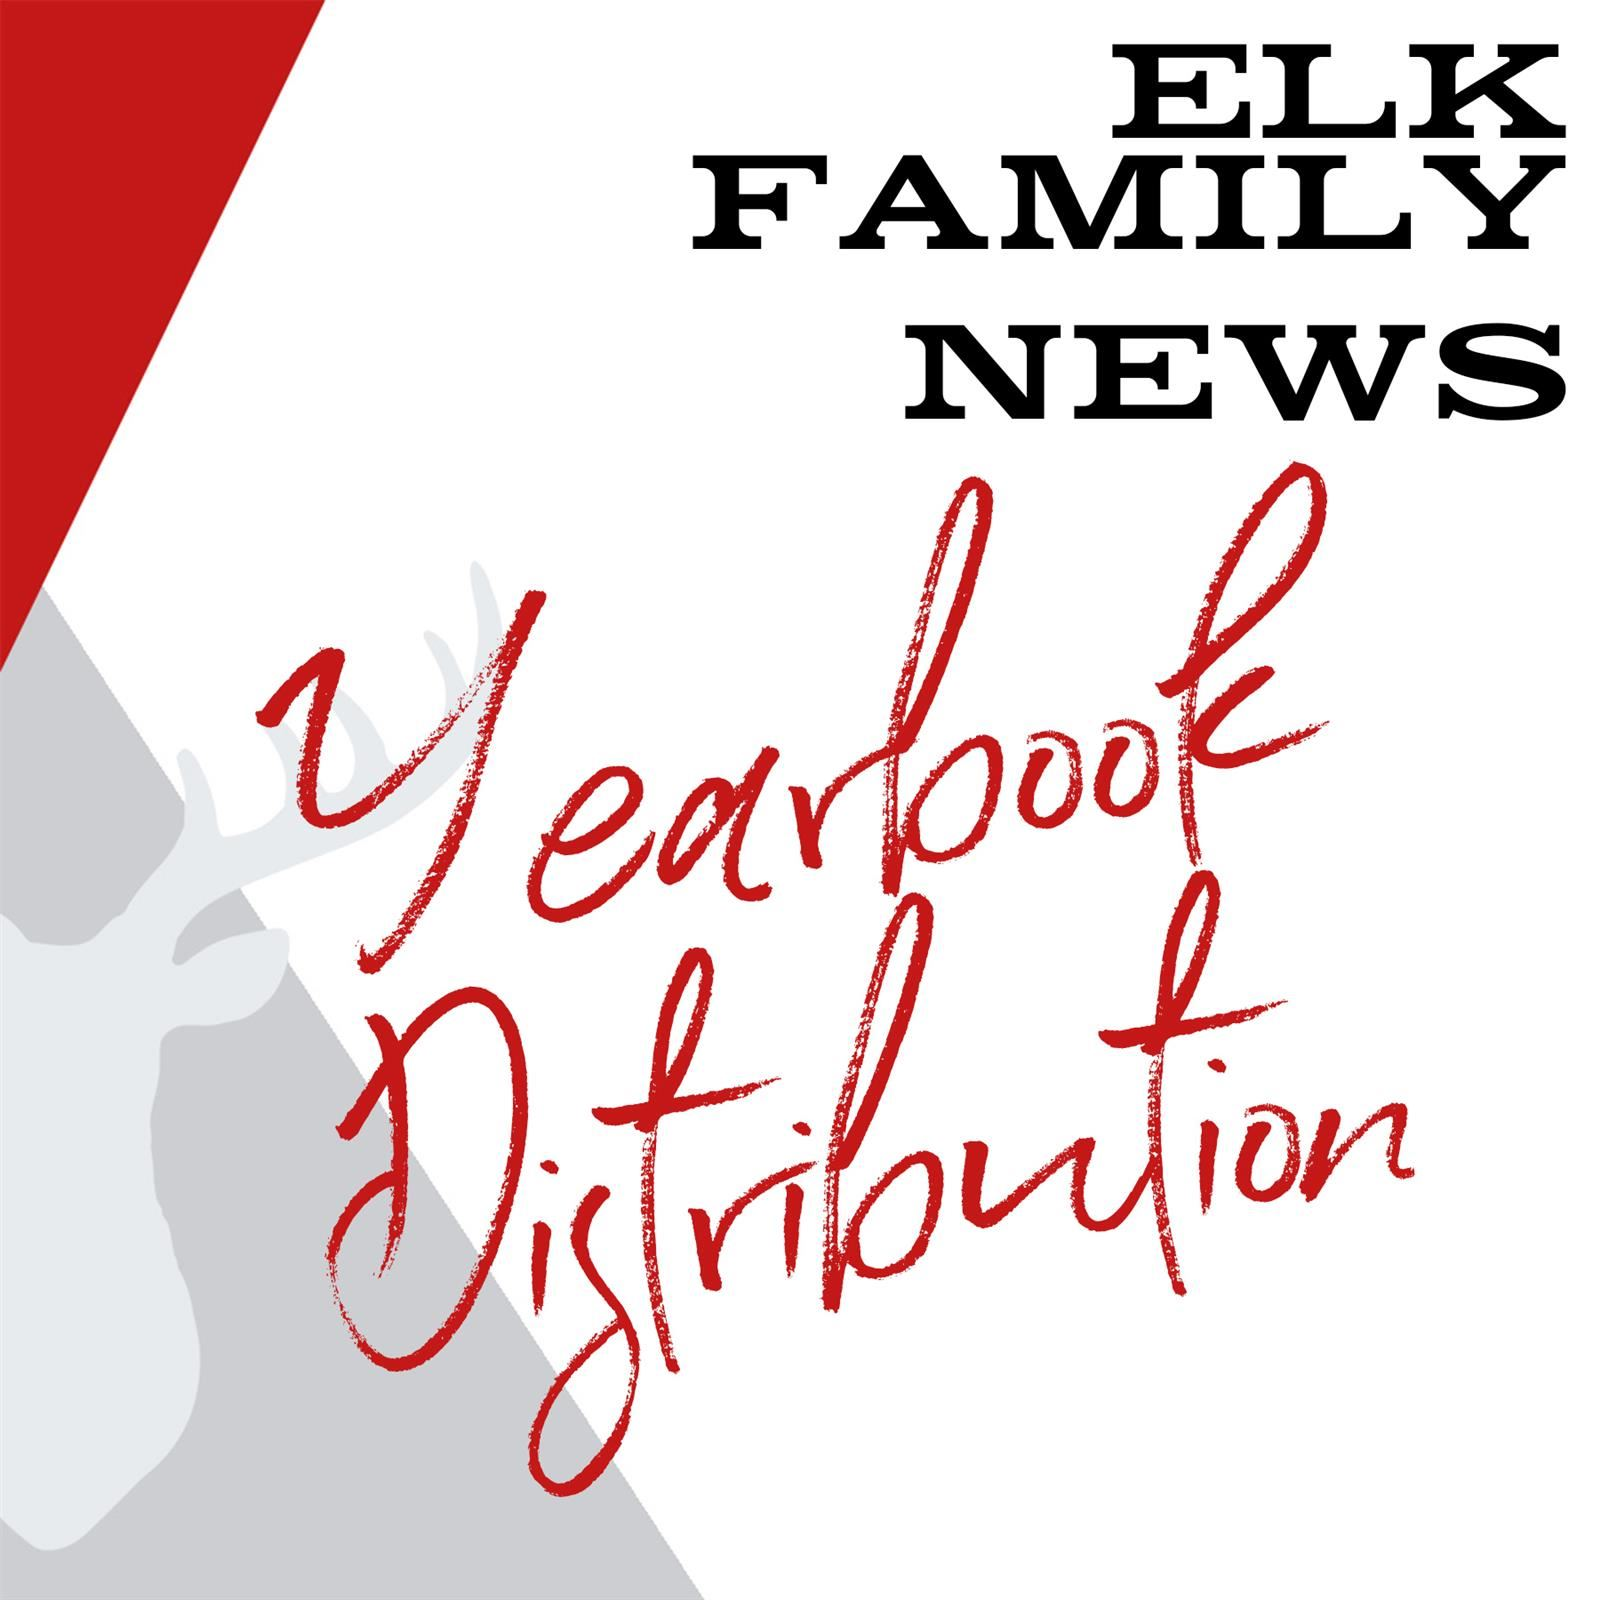 background: geometric shapes with elk Text: Elk Family News yearbook Distribution